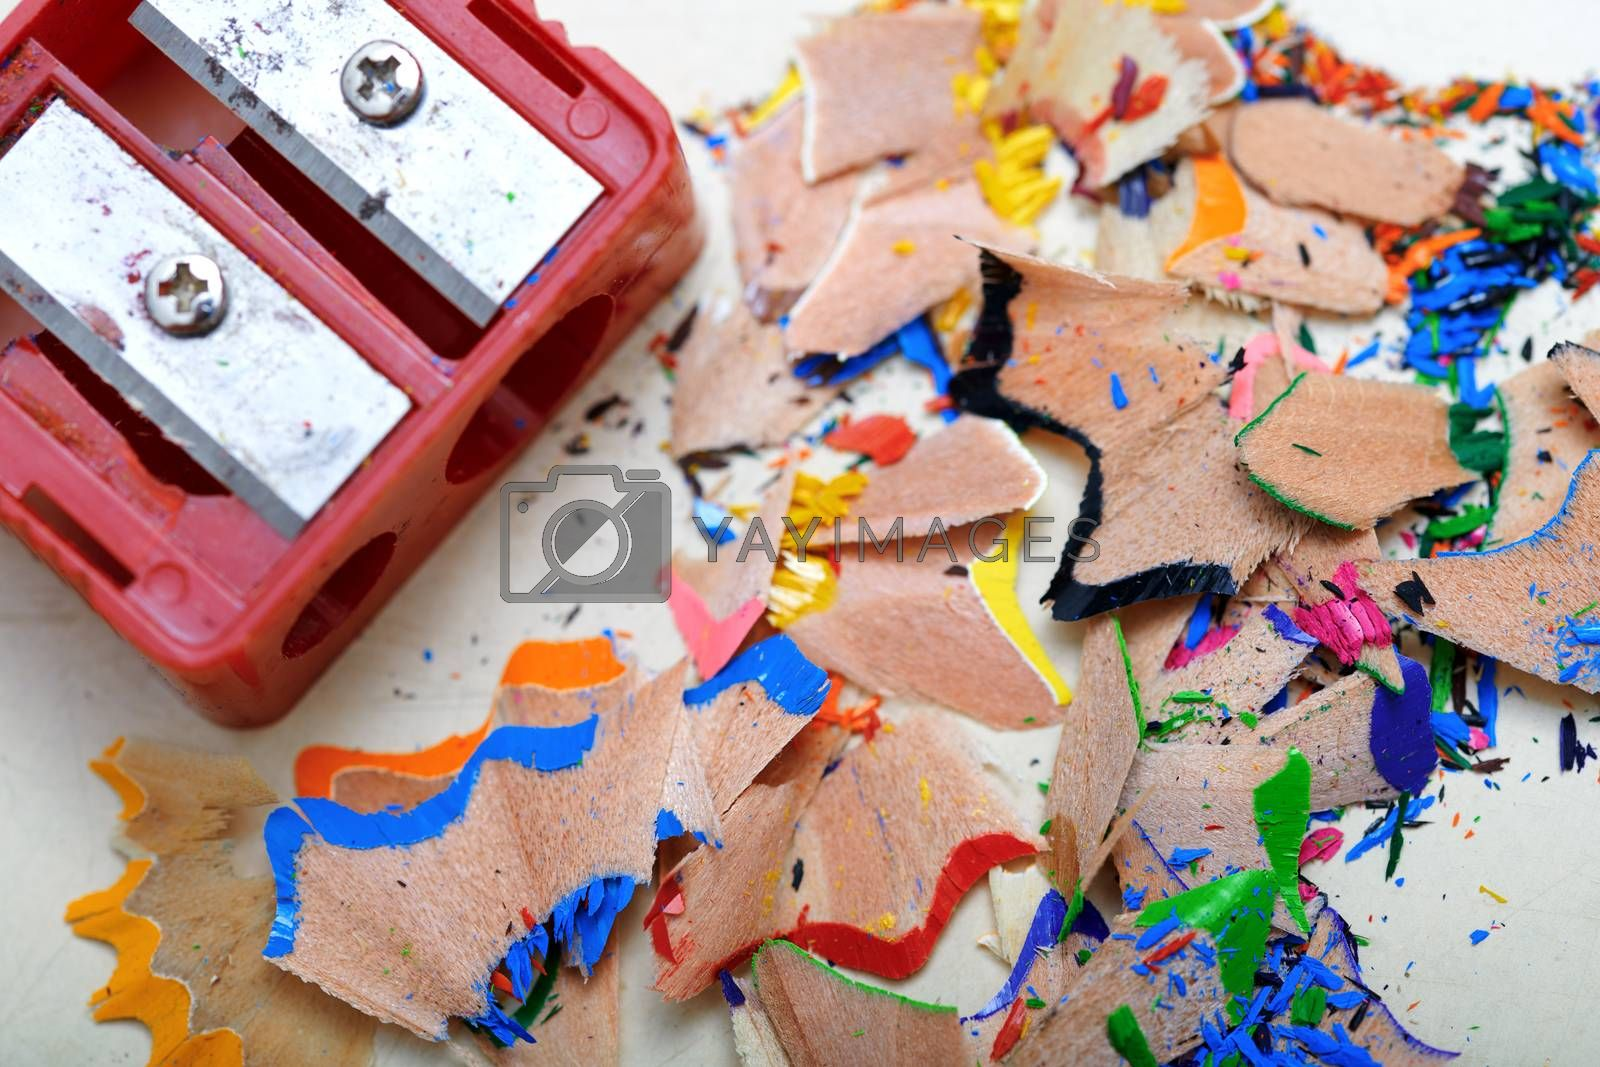 Sharpener and colored pencil shavings